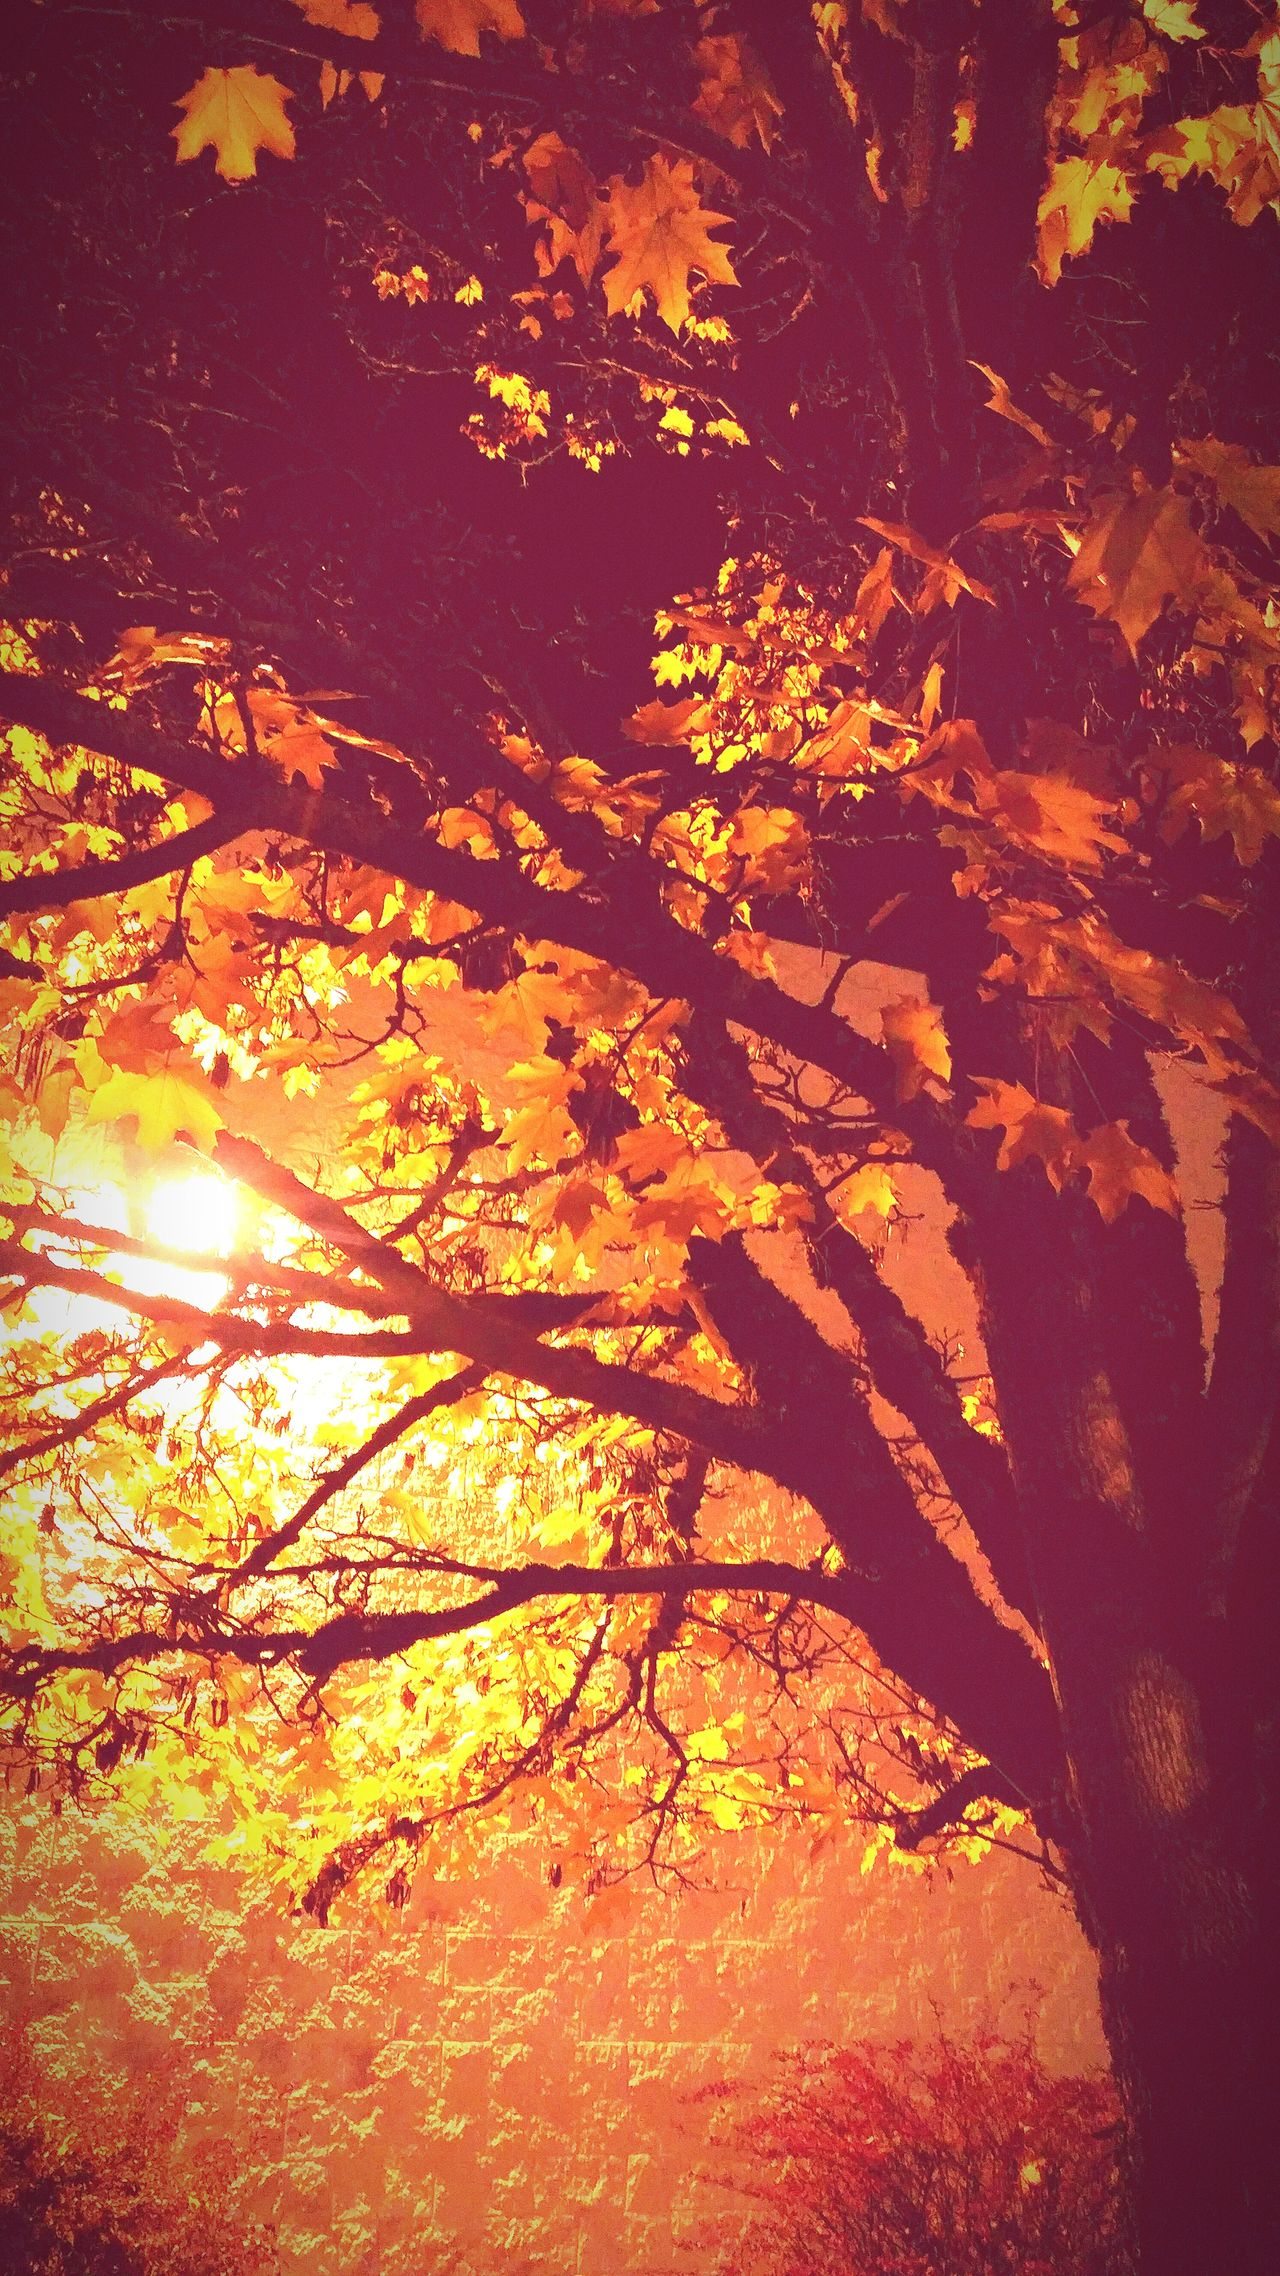 Tree Sunlight Nature Beauty In Nature Branch Sunset Outdoors Close-up Autumn Tree Transportation City Autumn 2016 Travel Photography Tranquility Happiness Scenics Memorable Moment